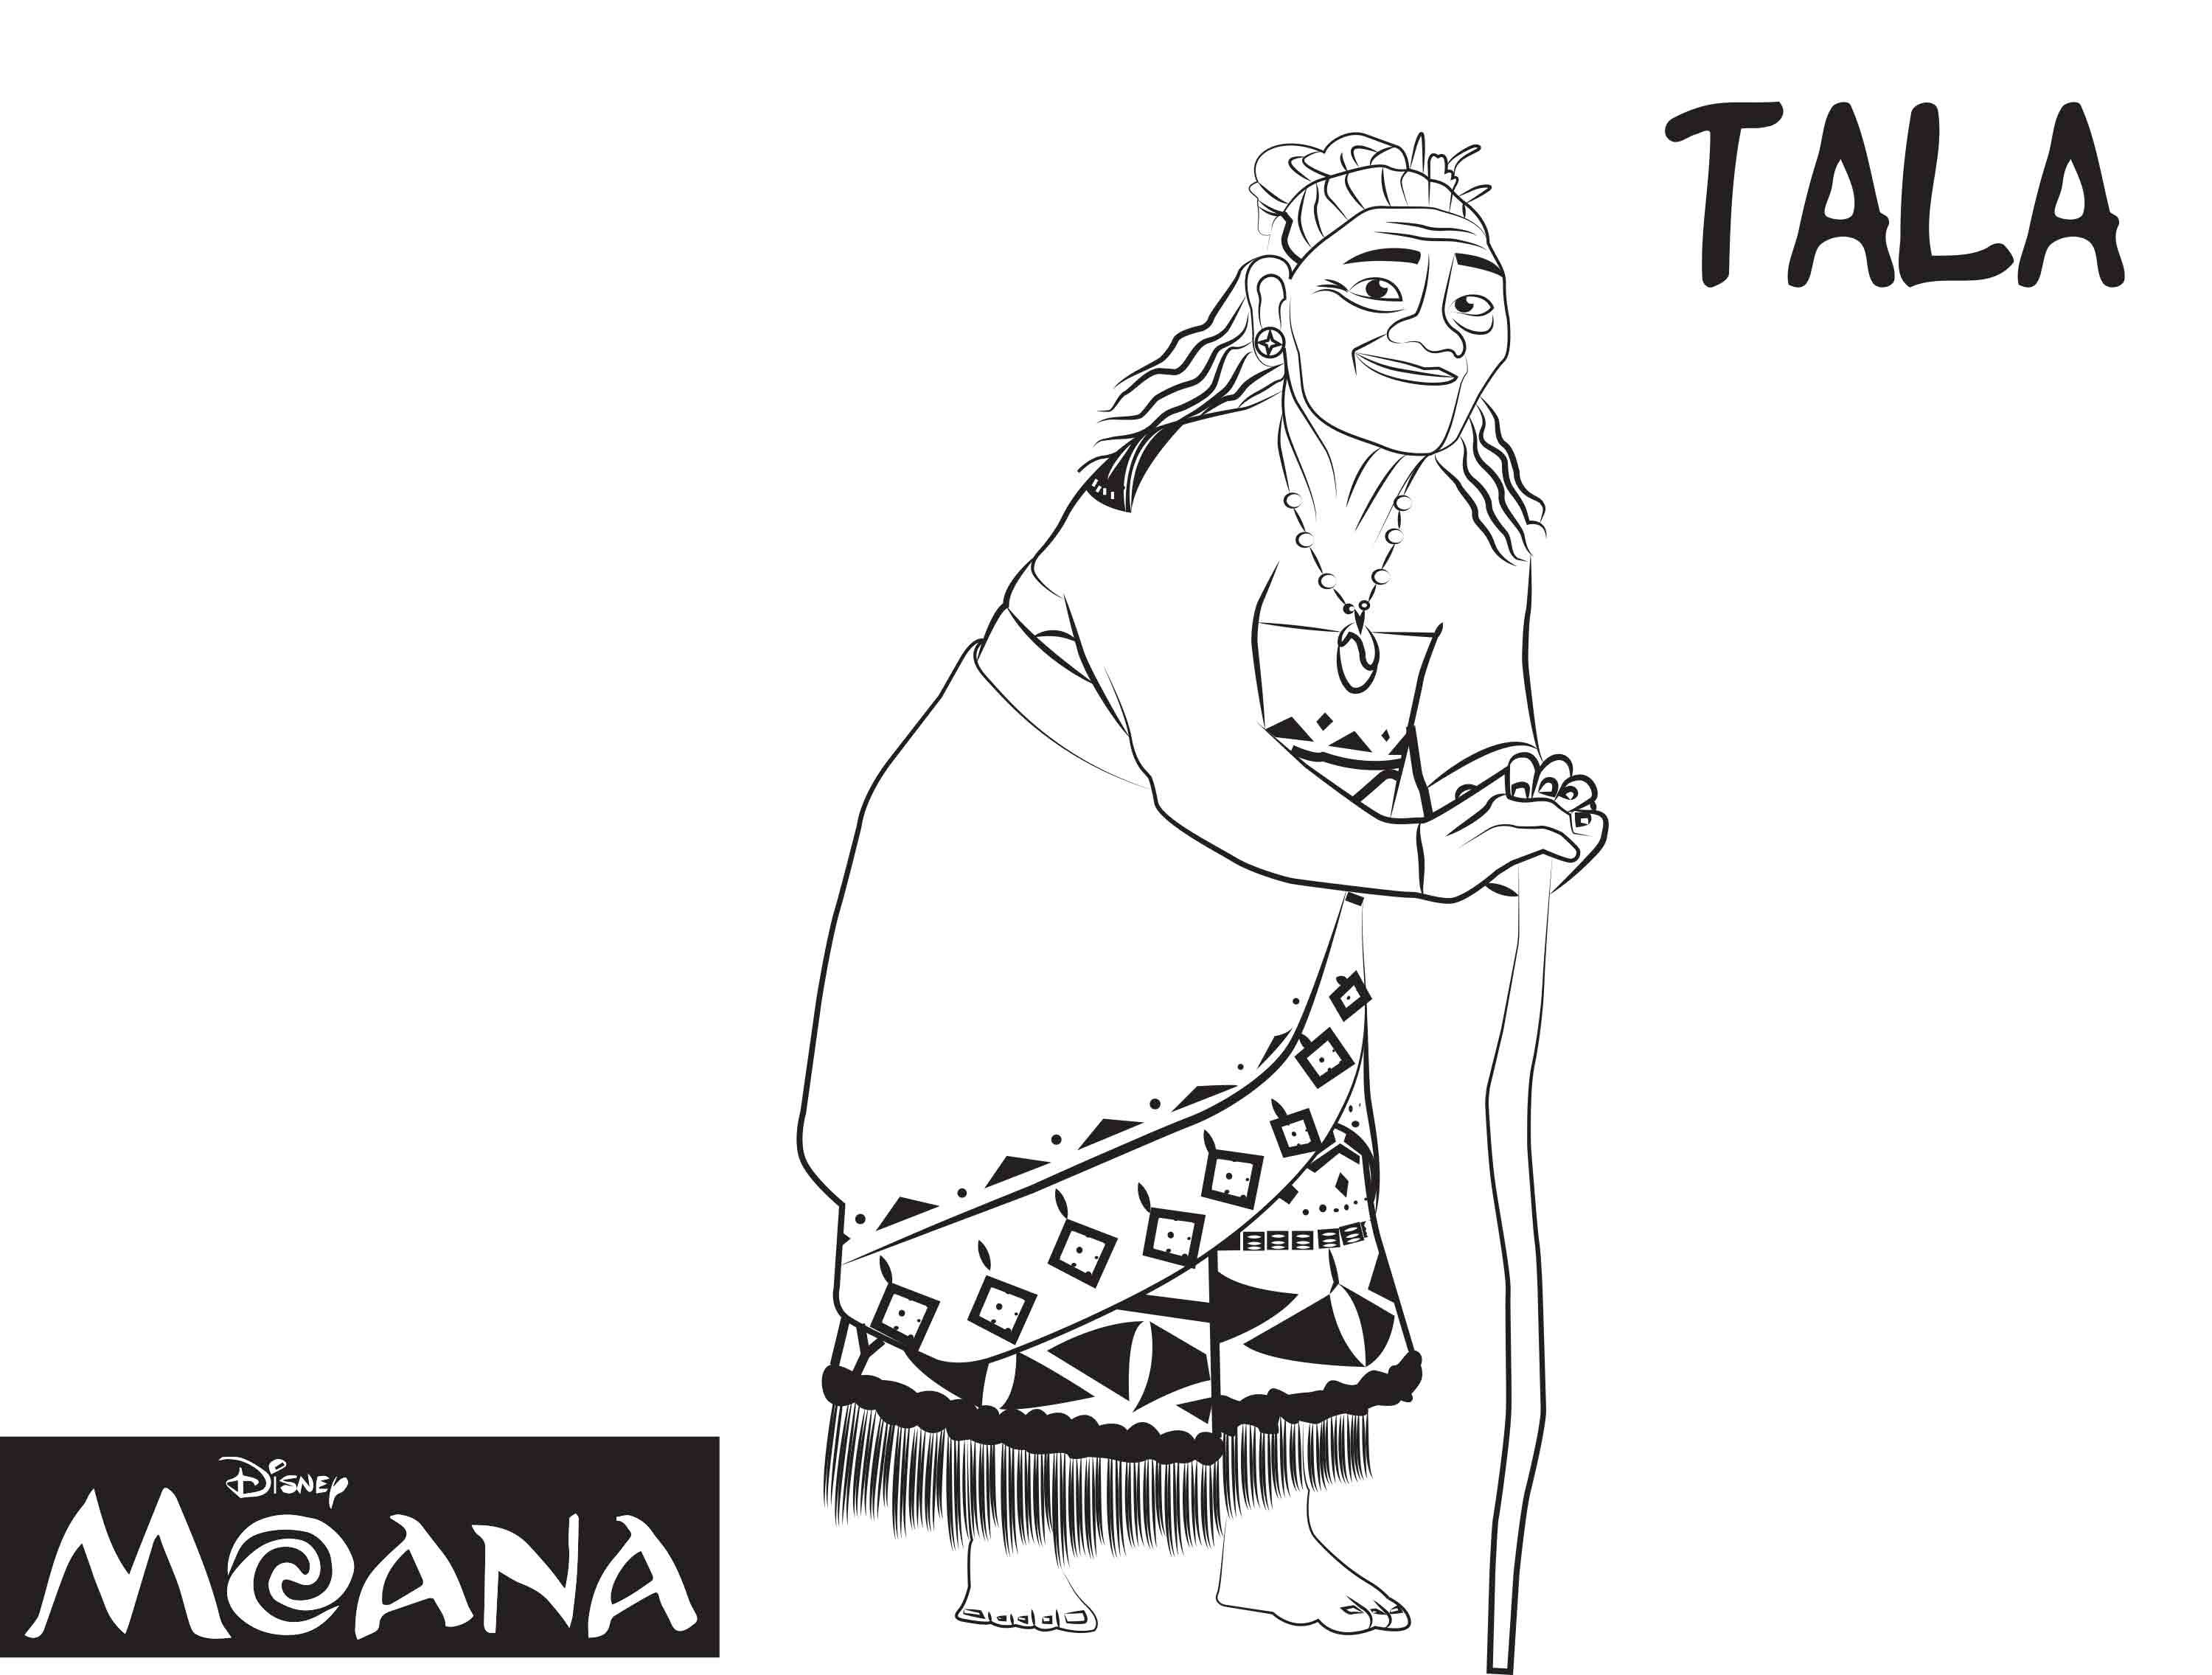 Disney Coloring Pages Birthday. tala from moana disney coloring pages printable and book to print  for free Find more online kids adults of Coloring Pages Pinterest Moana Mice